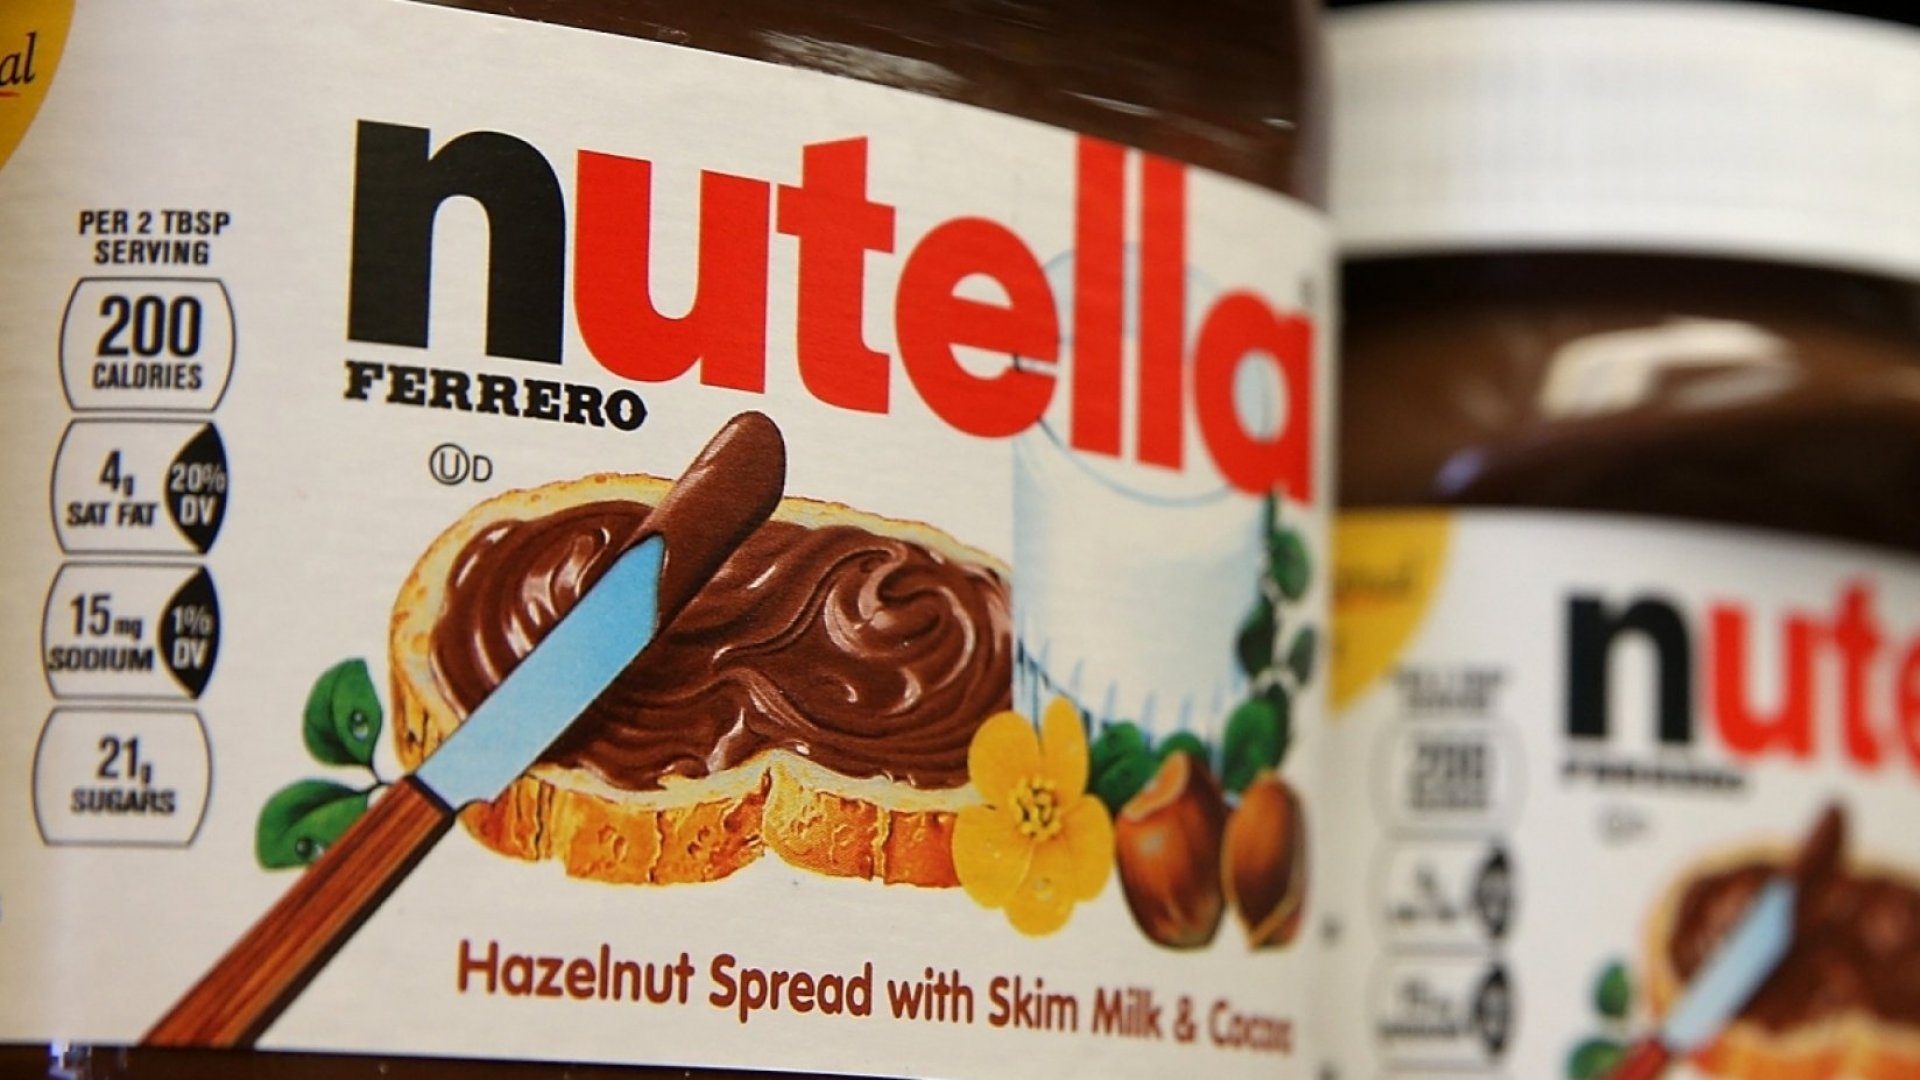 The Nutella Scandal: What Entrepreneurs Can Learn